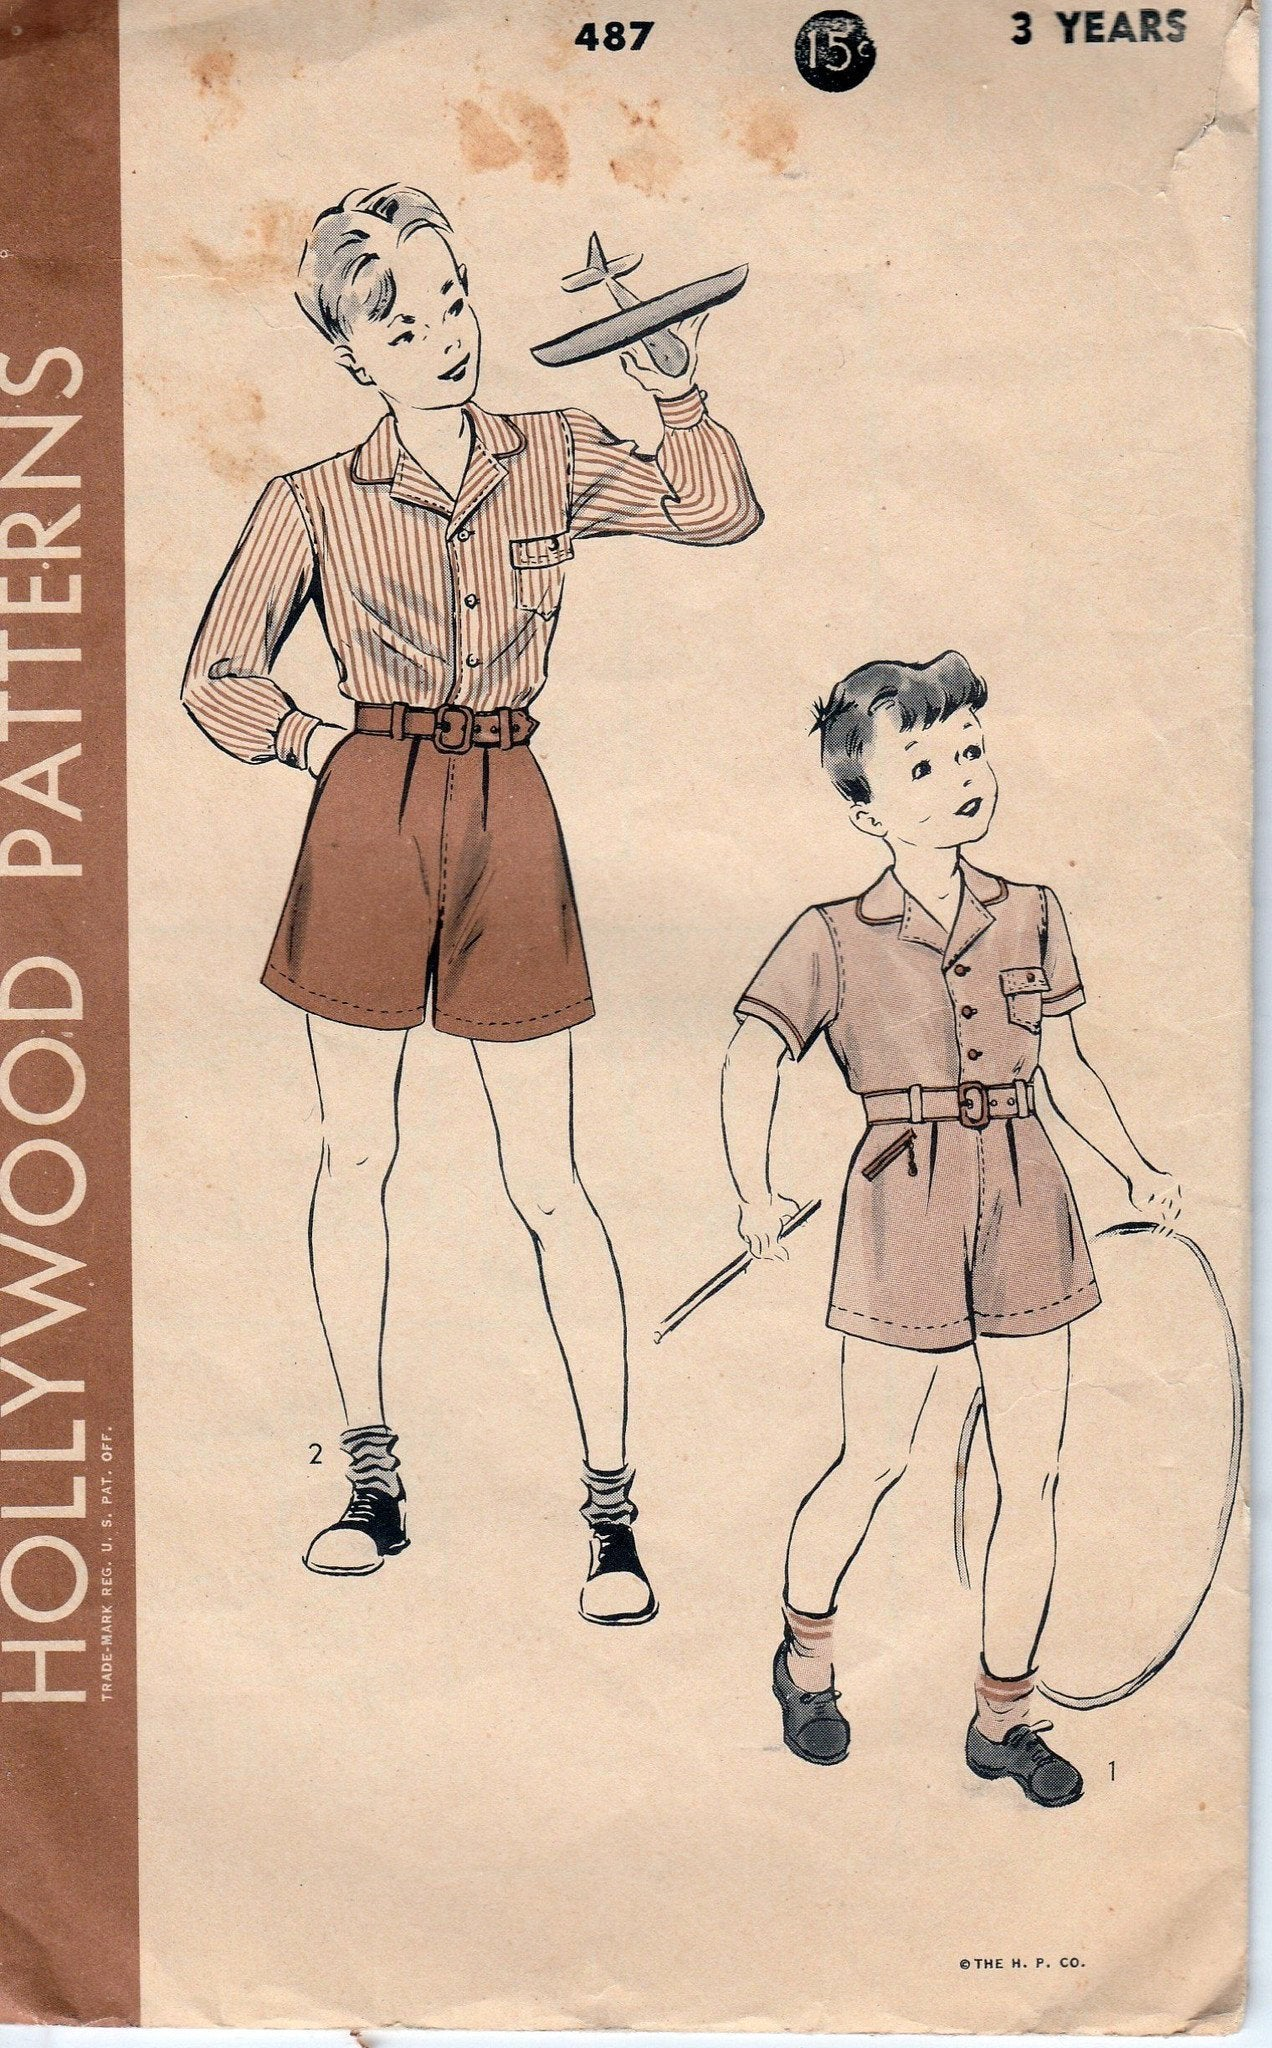 Hollywood 487 Boys Two Piece Suit Toddler Shirt Shorts Vintage 1940's Sewing Pattern - VintageStitching - Vintage Sewing Patterns